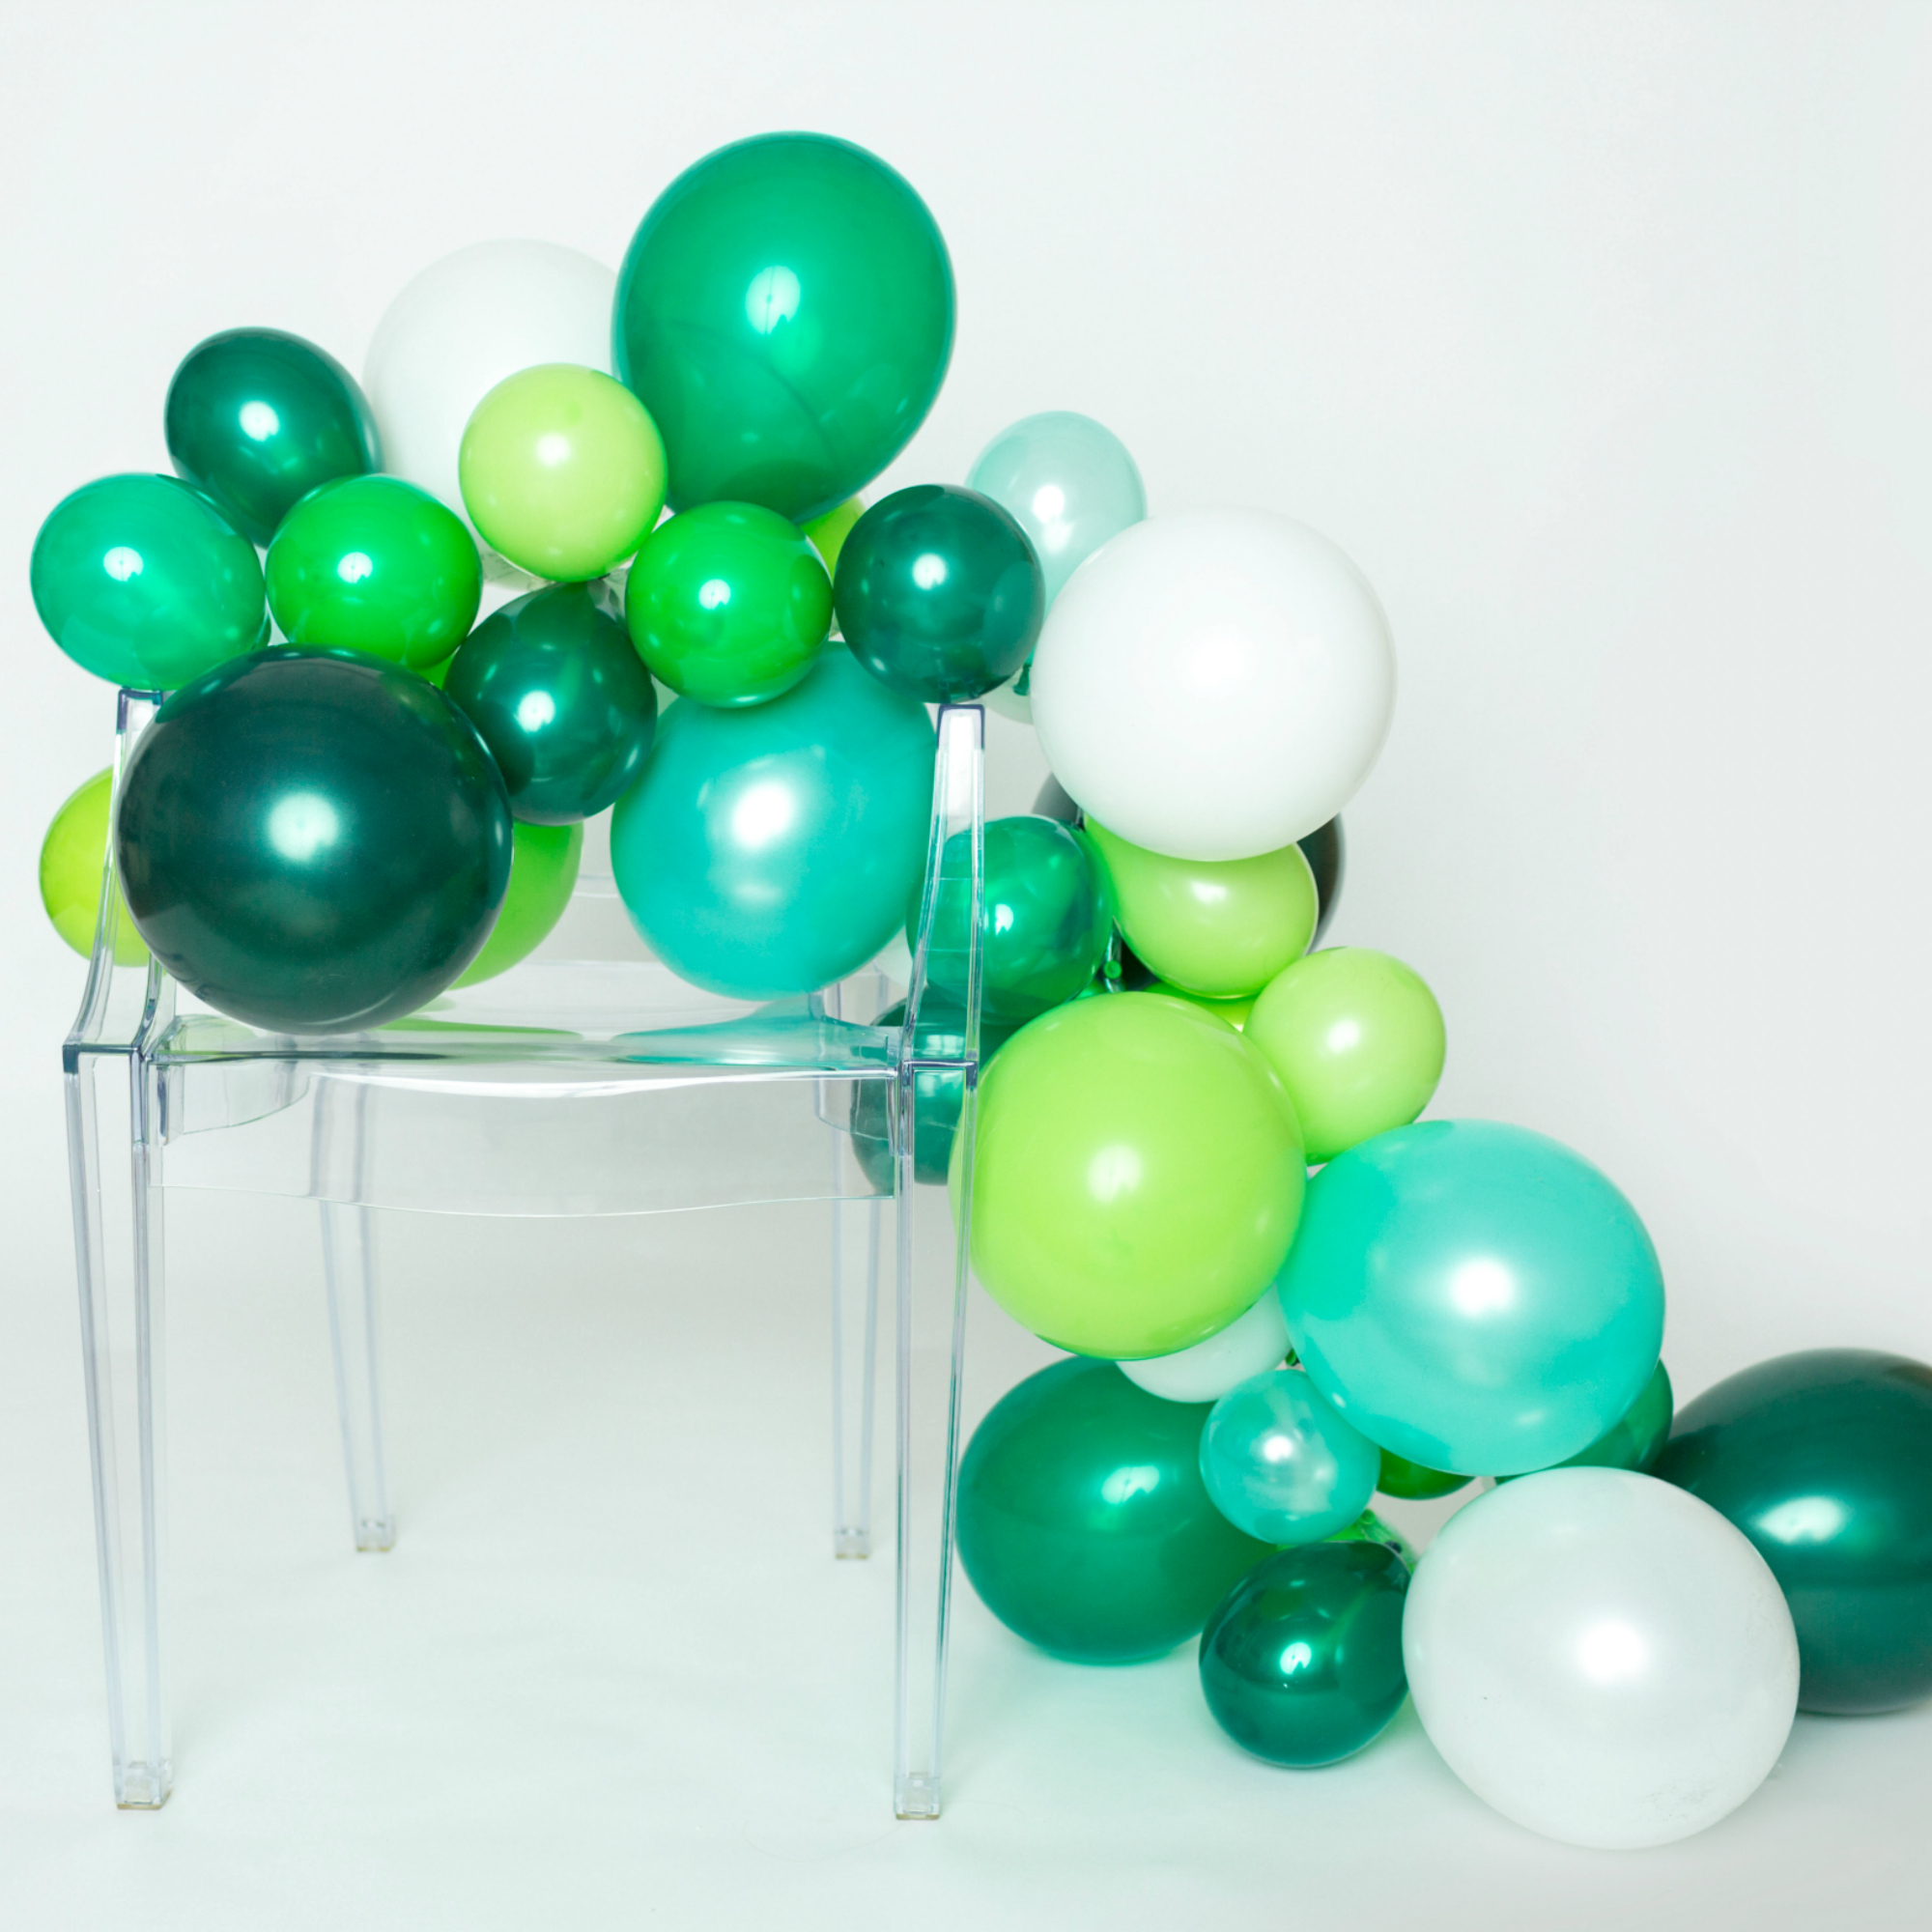 Diy Balloon Garland Kit In The Jungle